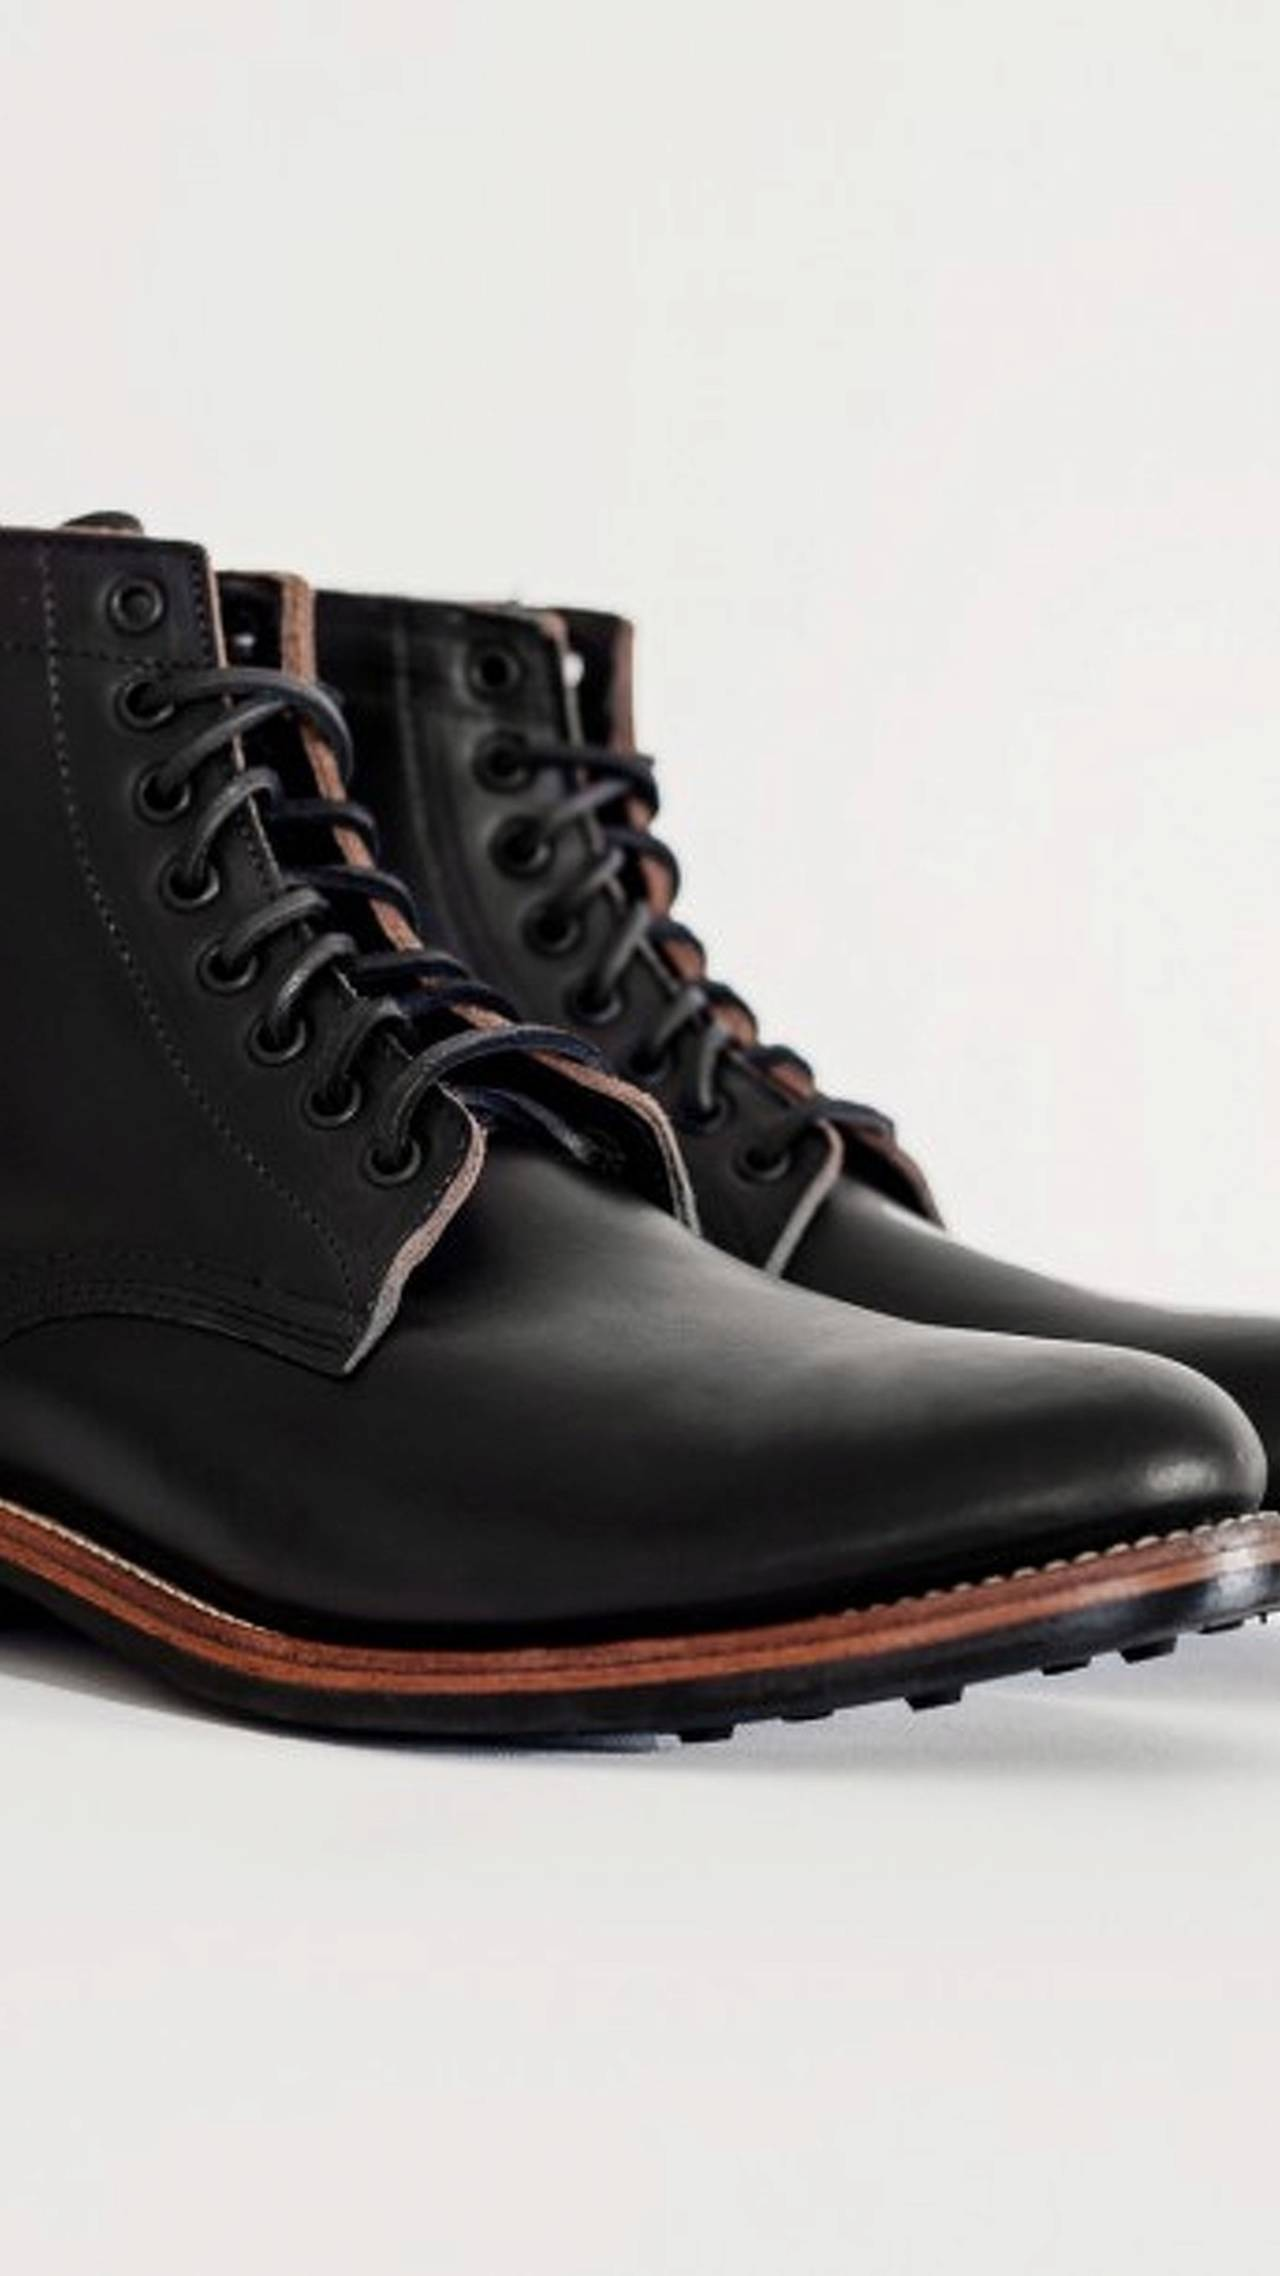 10 Great Men's Boots For Style On And Off the Bike - It's Gift Season!